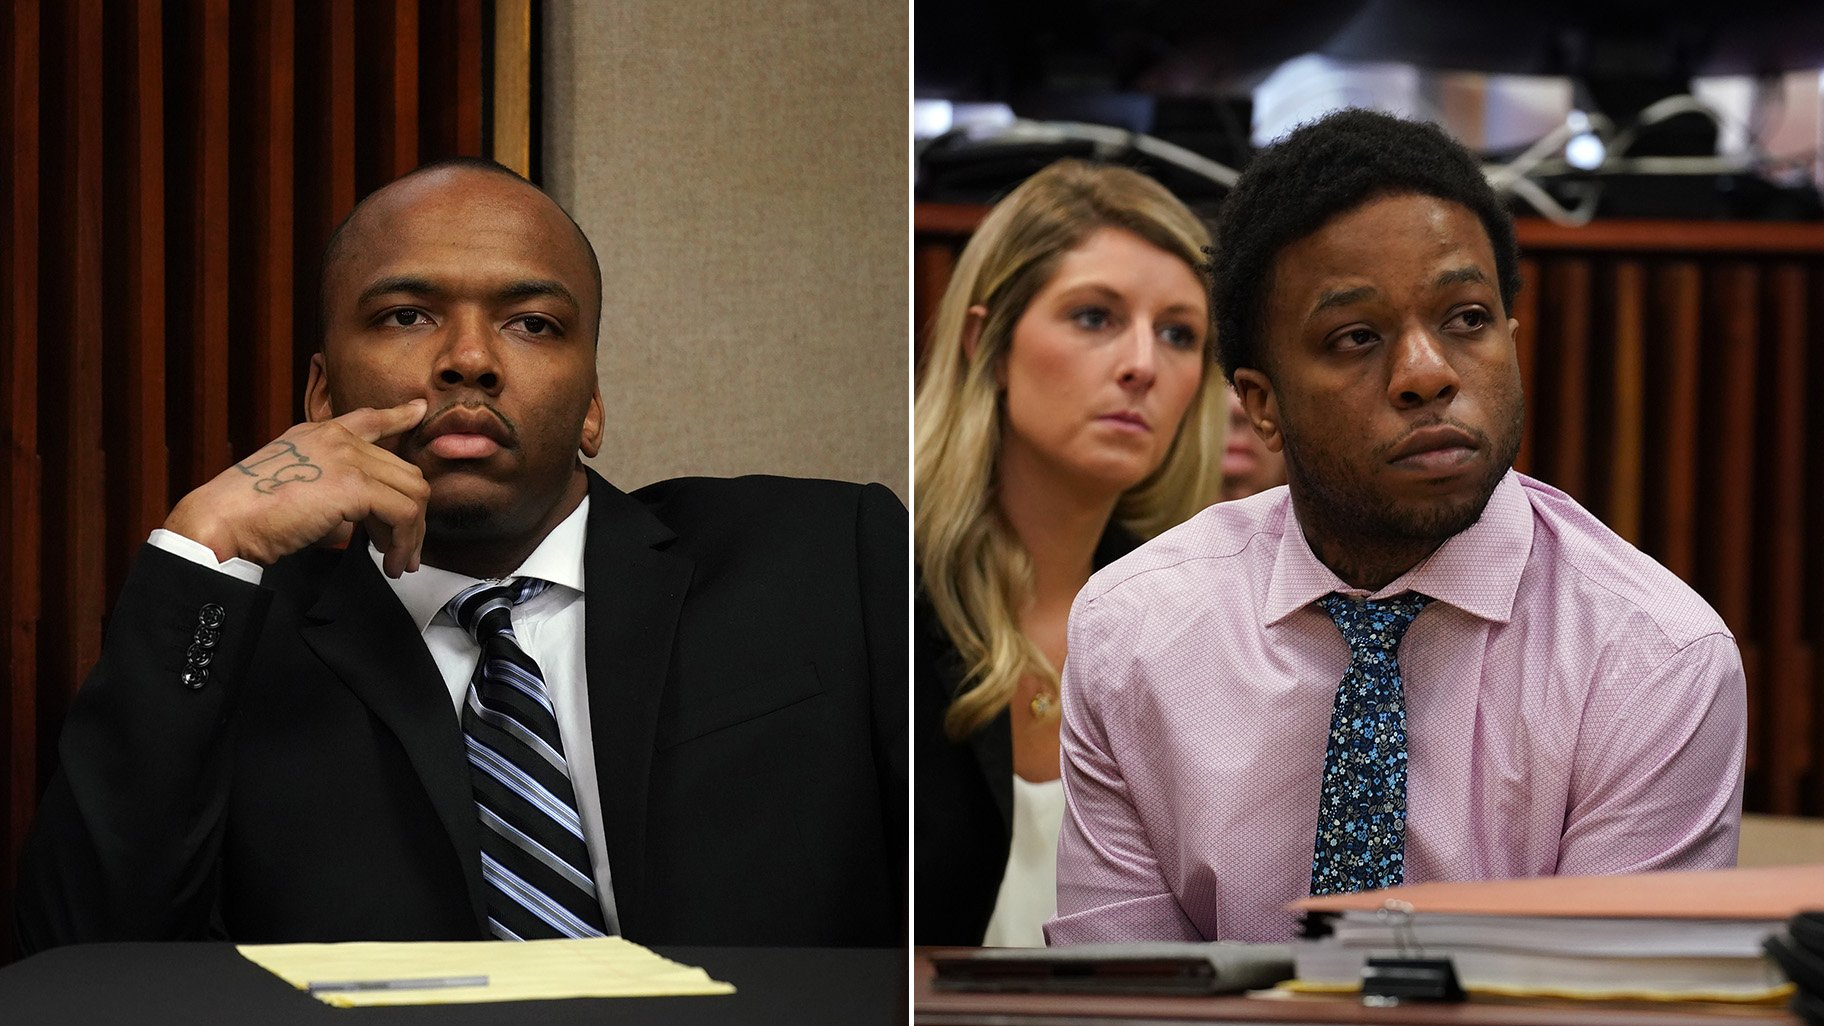 Dwright Boone-Doty, left, and Corey Morgan appear during opening statements in the murder trial of 9-year-old Tyshawn Lee at the Leighton Criminal Court building in Chicago on Tuesday, Sept. 17, 2019. (E. Jason Wambsgans / Chicago Tribune / pool)